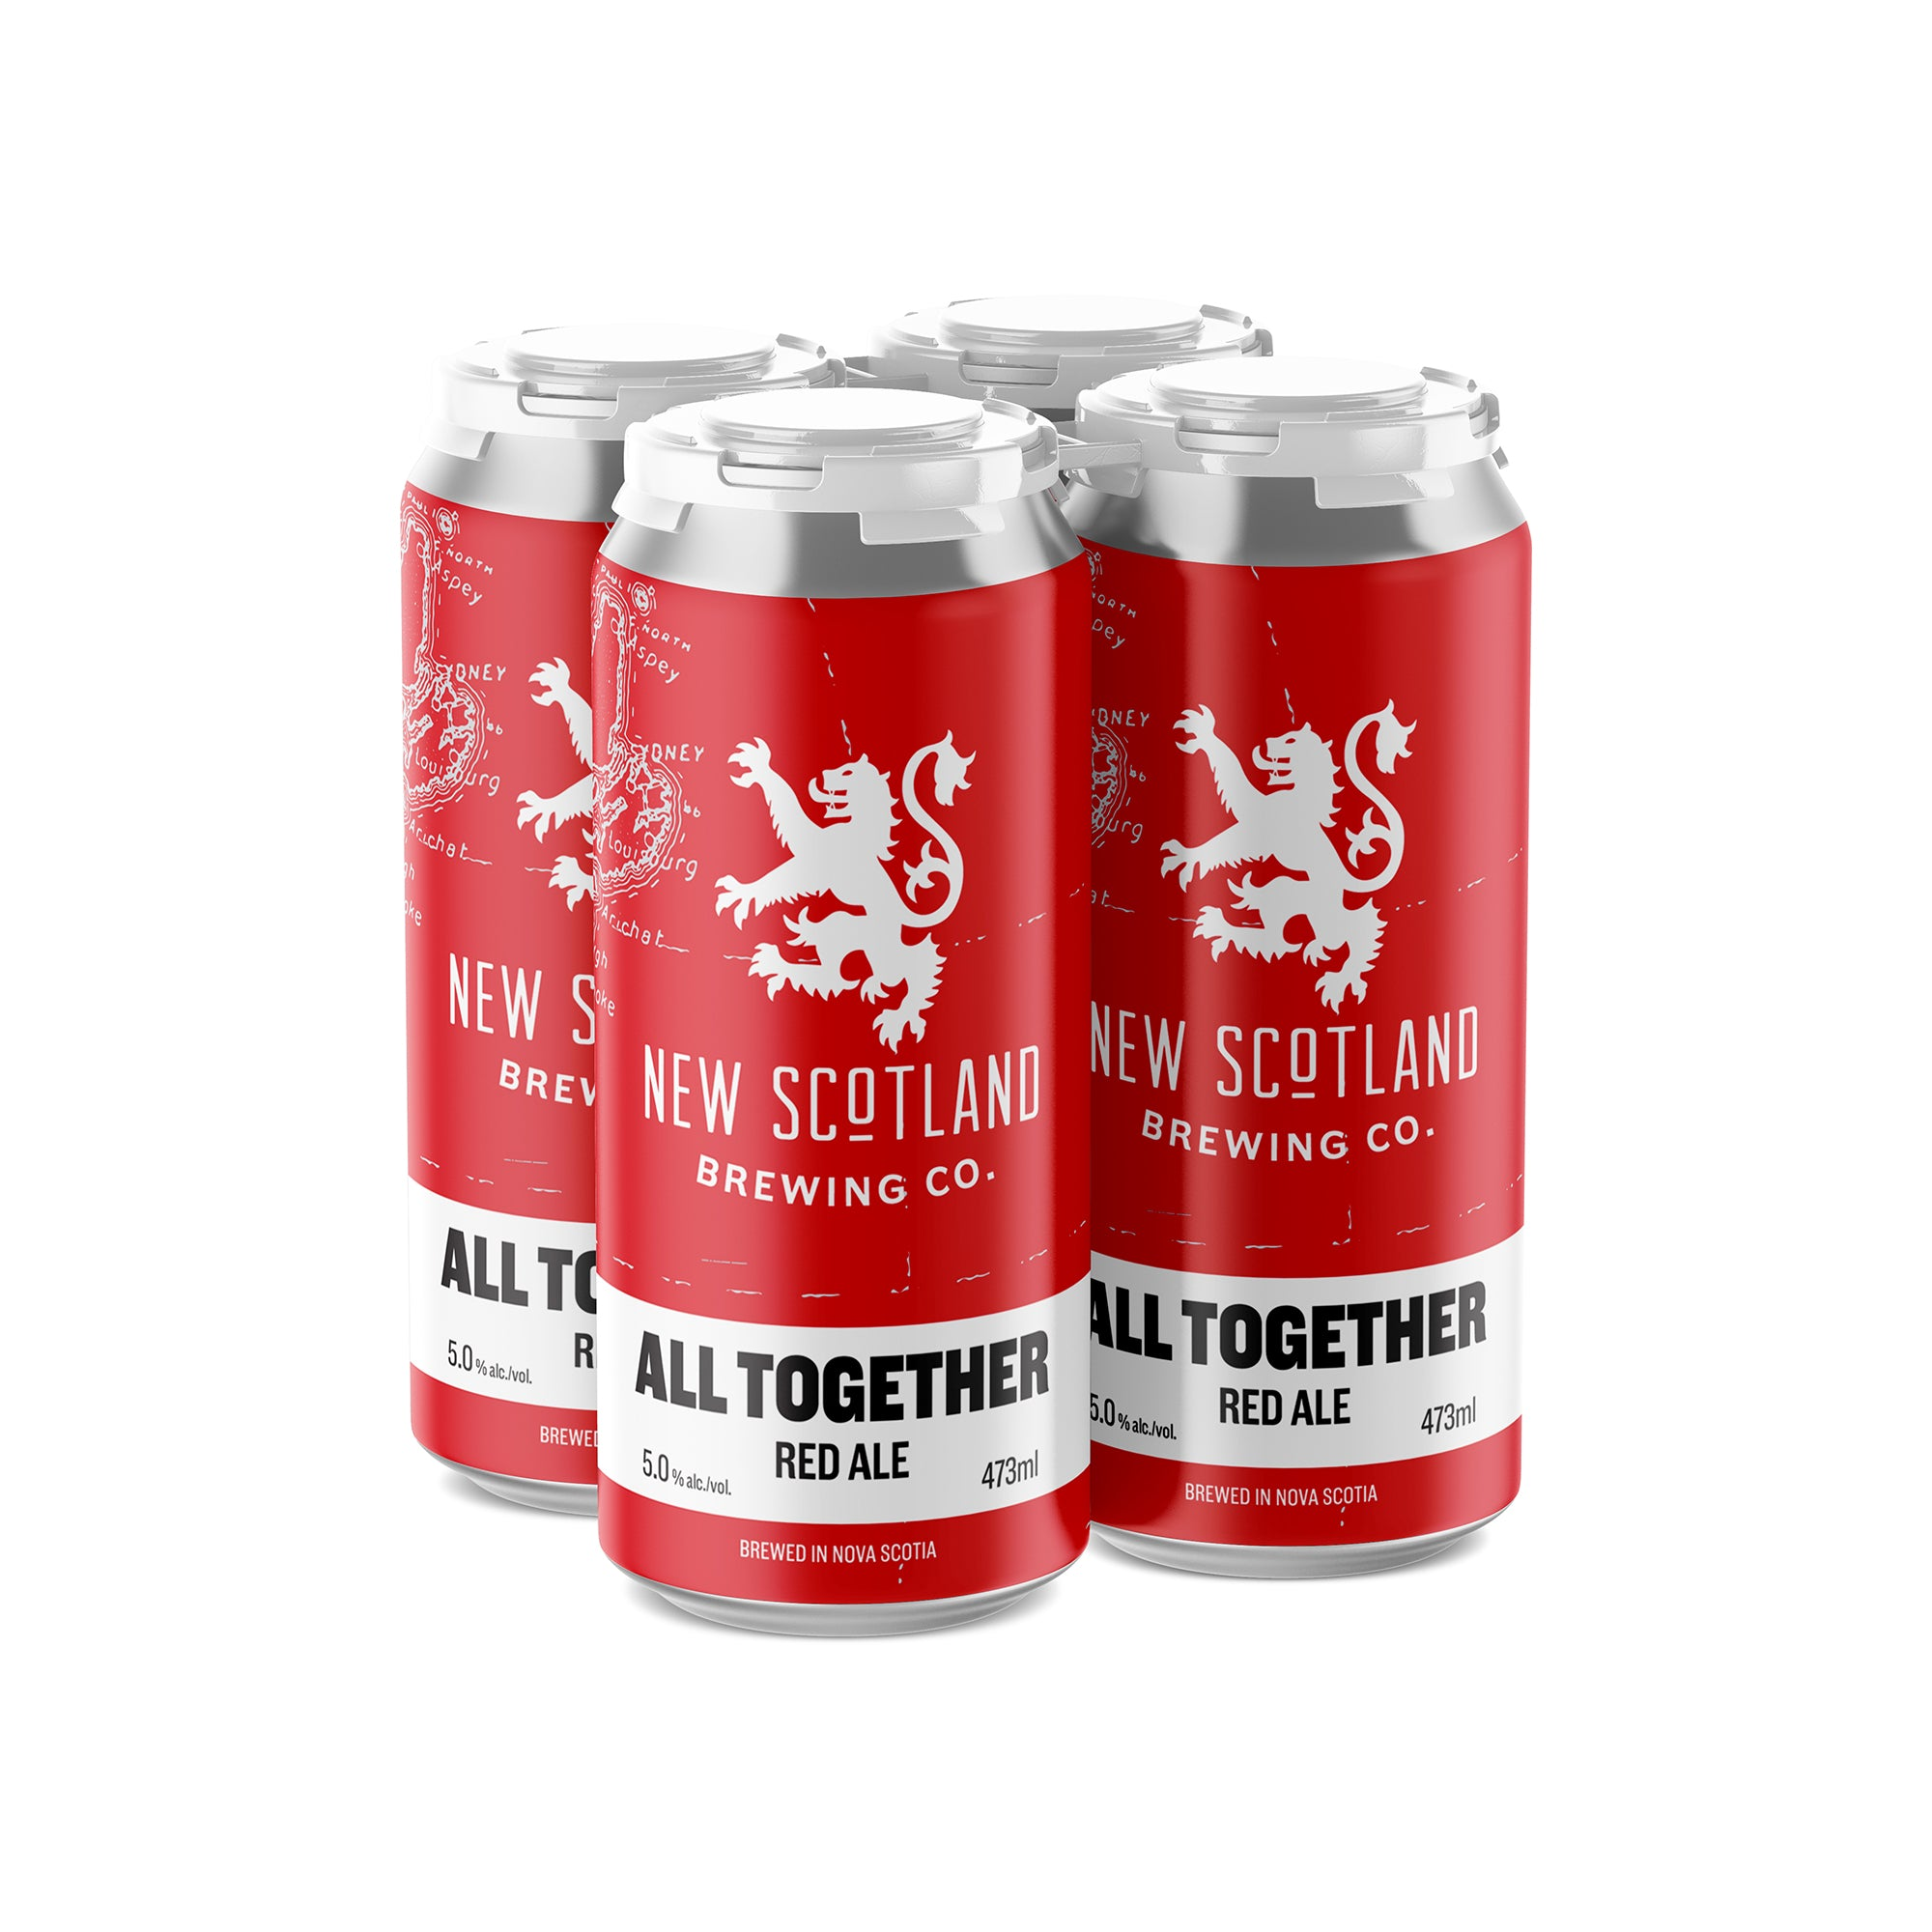 All Together Red Ale